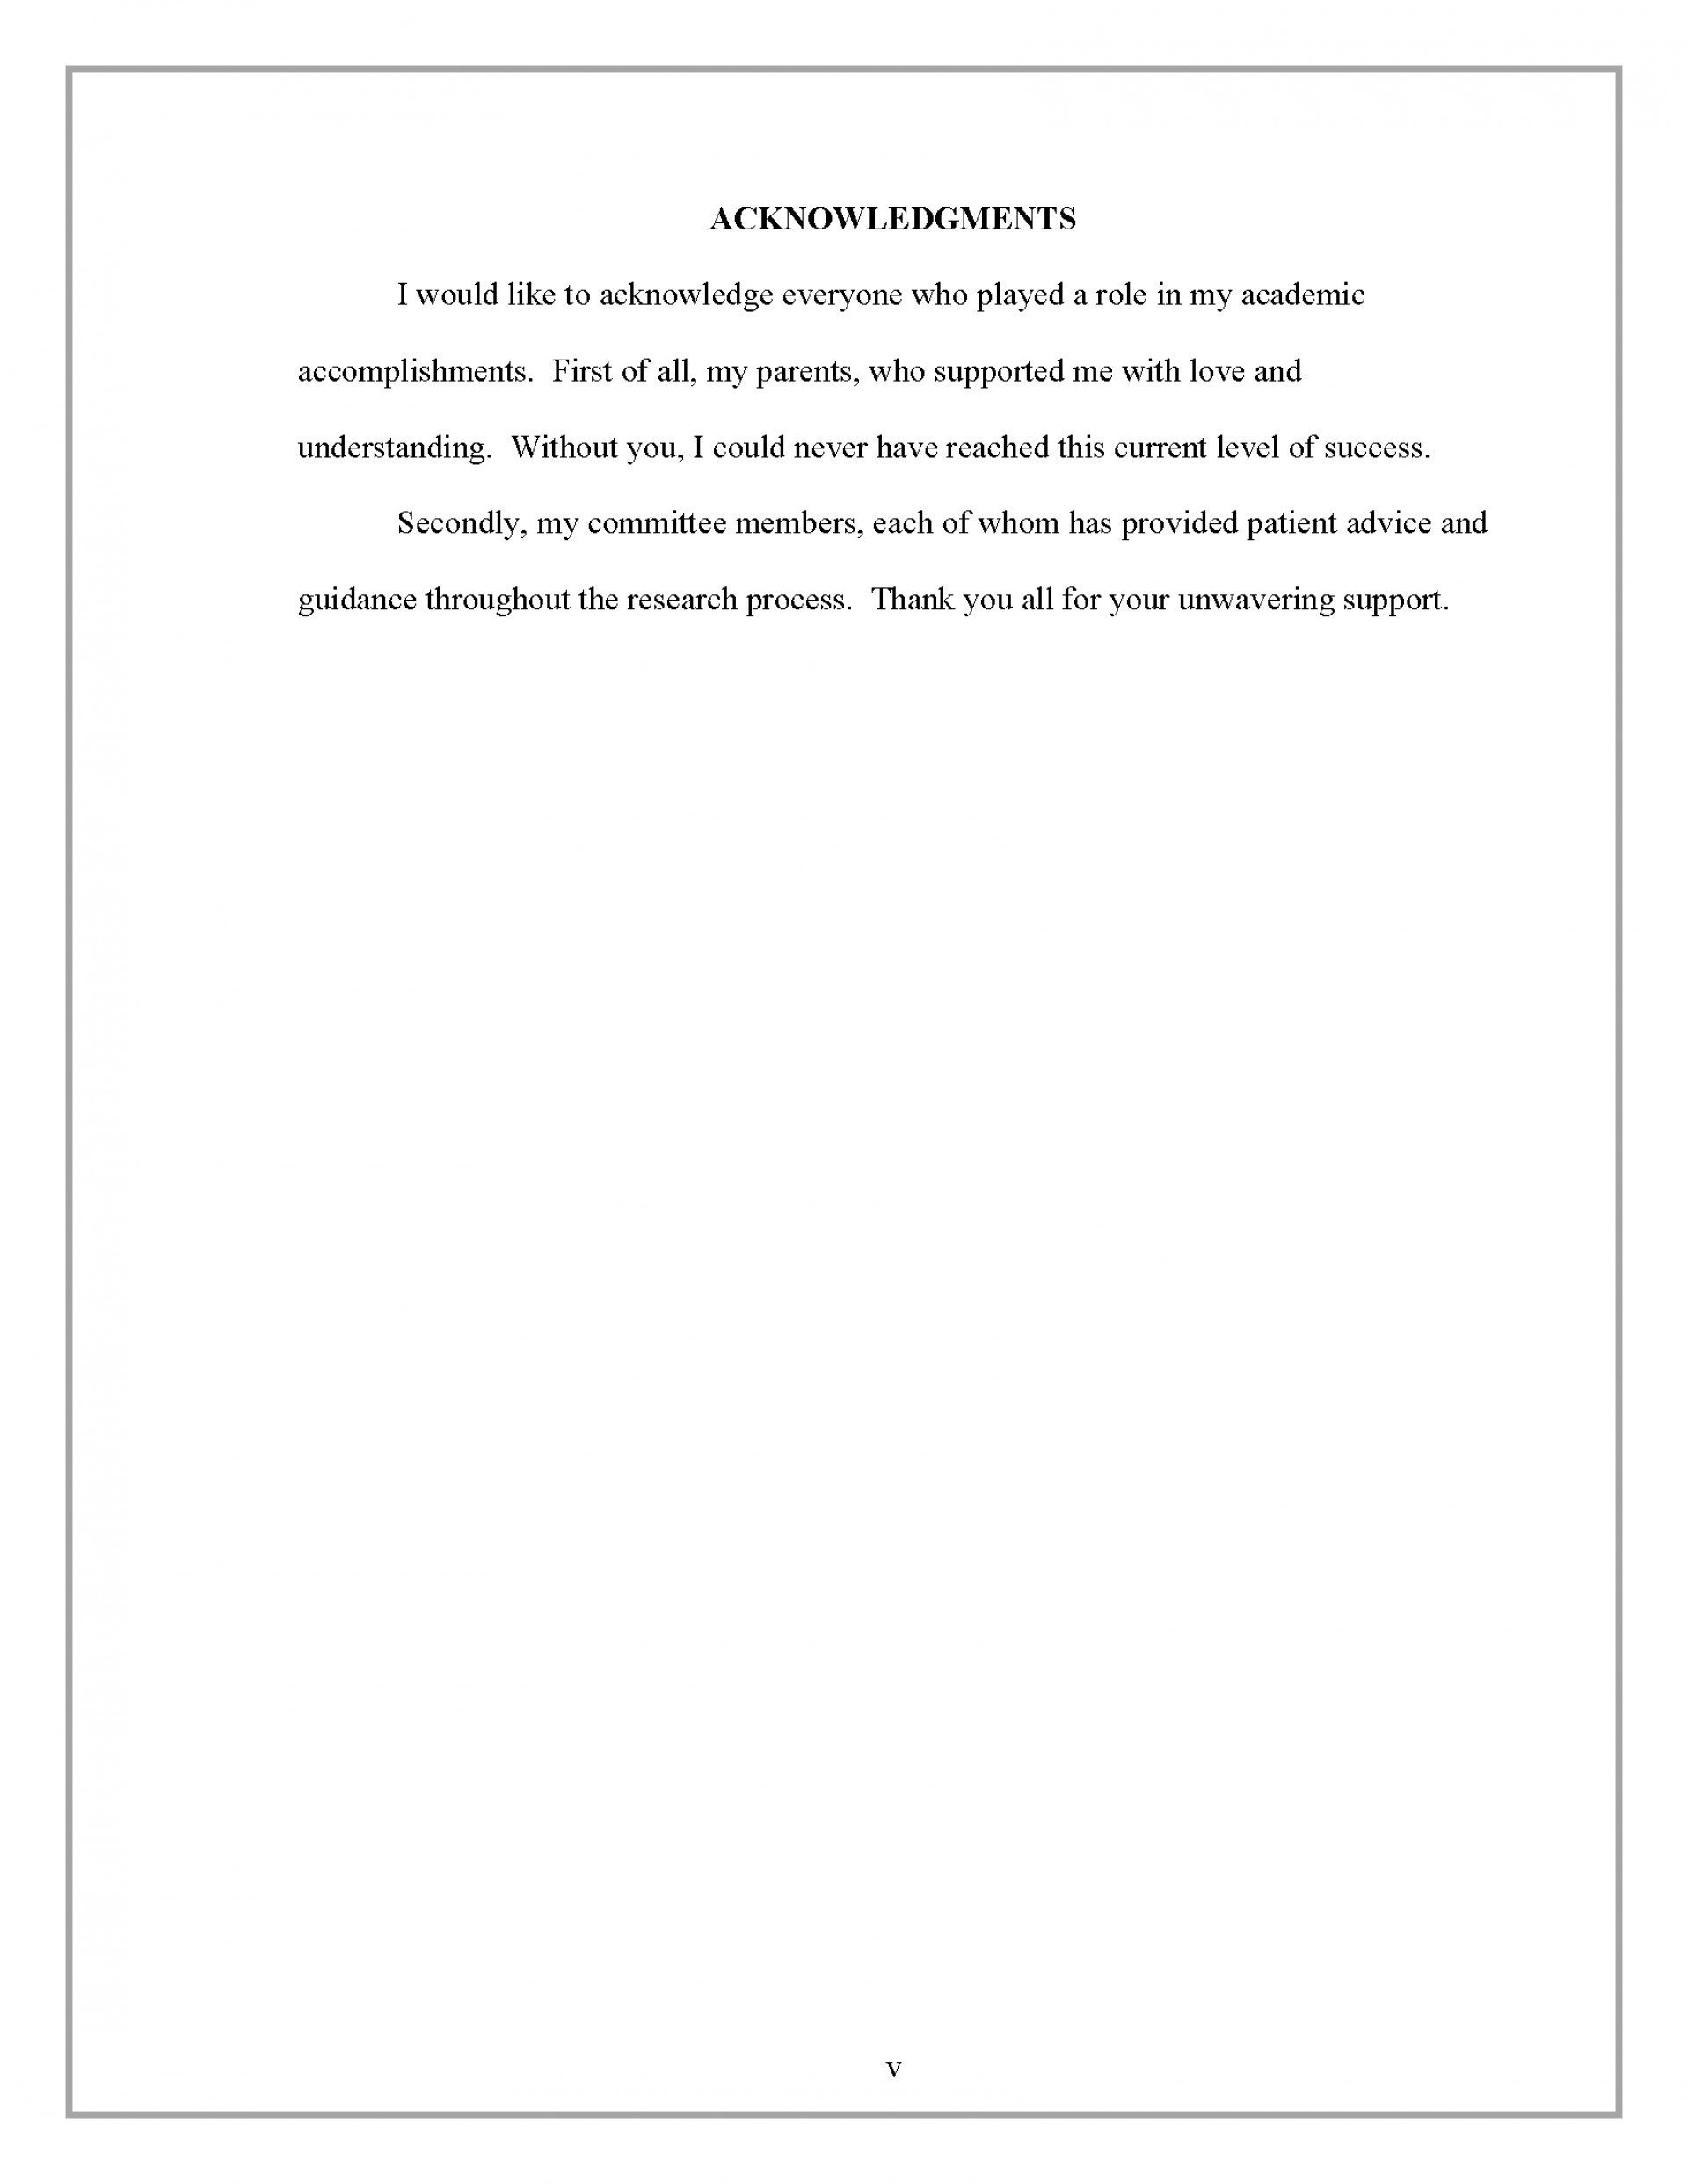 002 Acknowledgement Example For Research Paper Acknowledgment Border Rare Pdf 1920